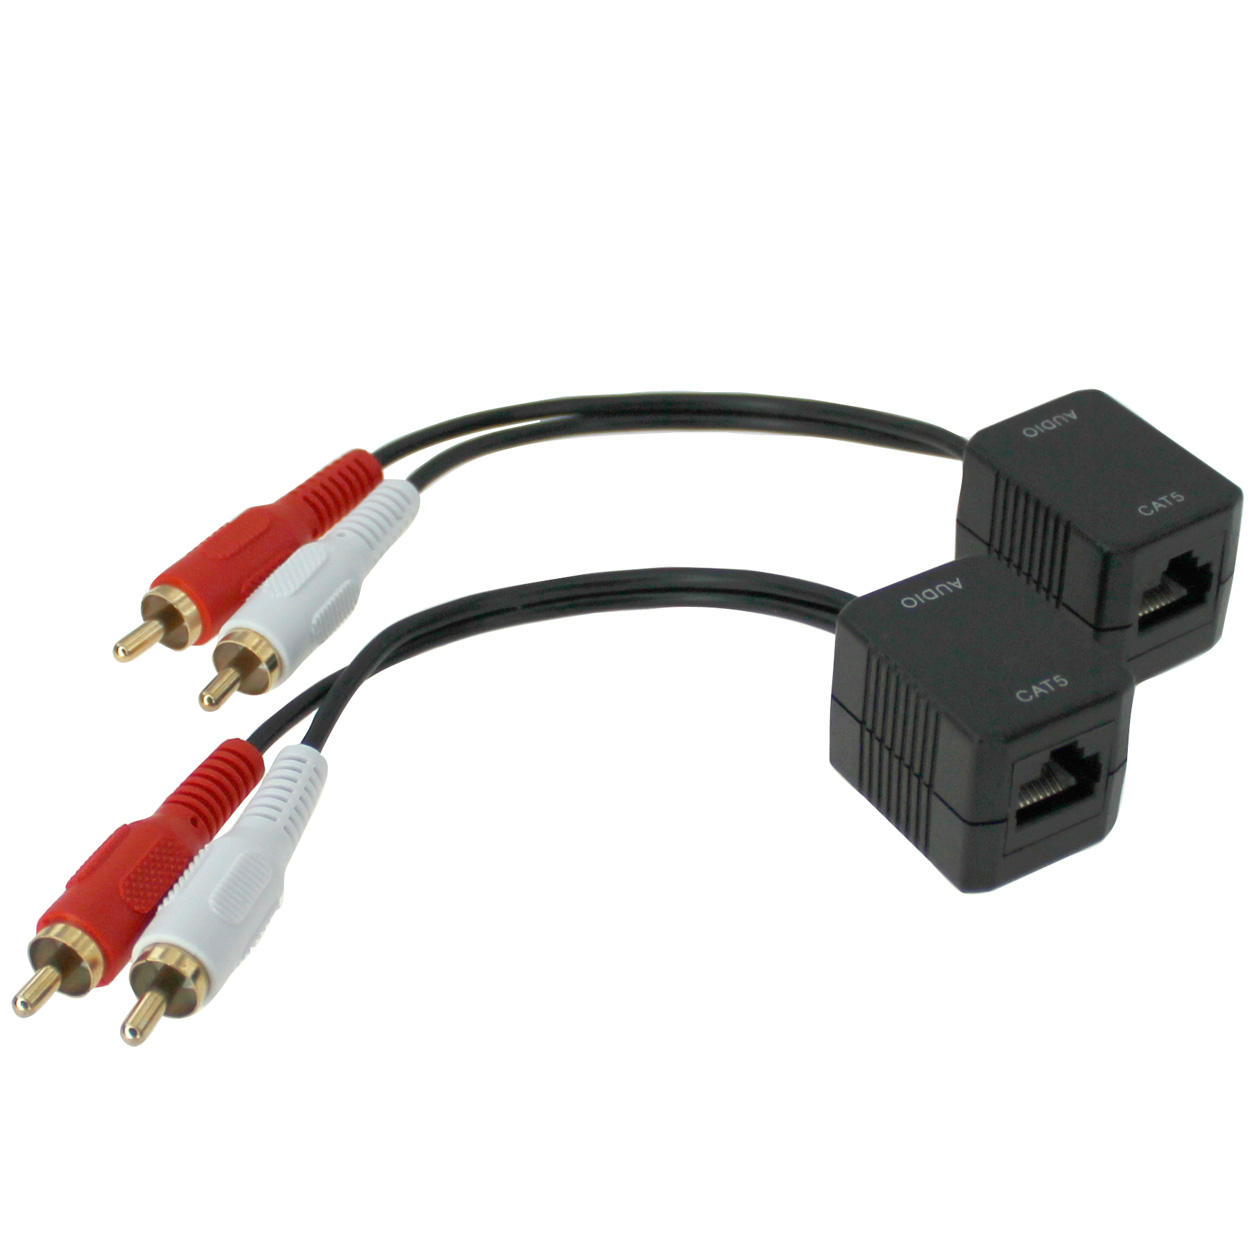 hight resolution of rca audio l r extender over ethernet cable up to 250ft pi manufacturing